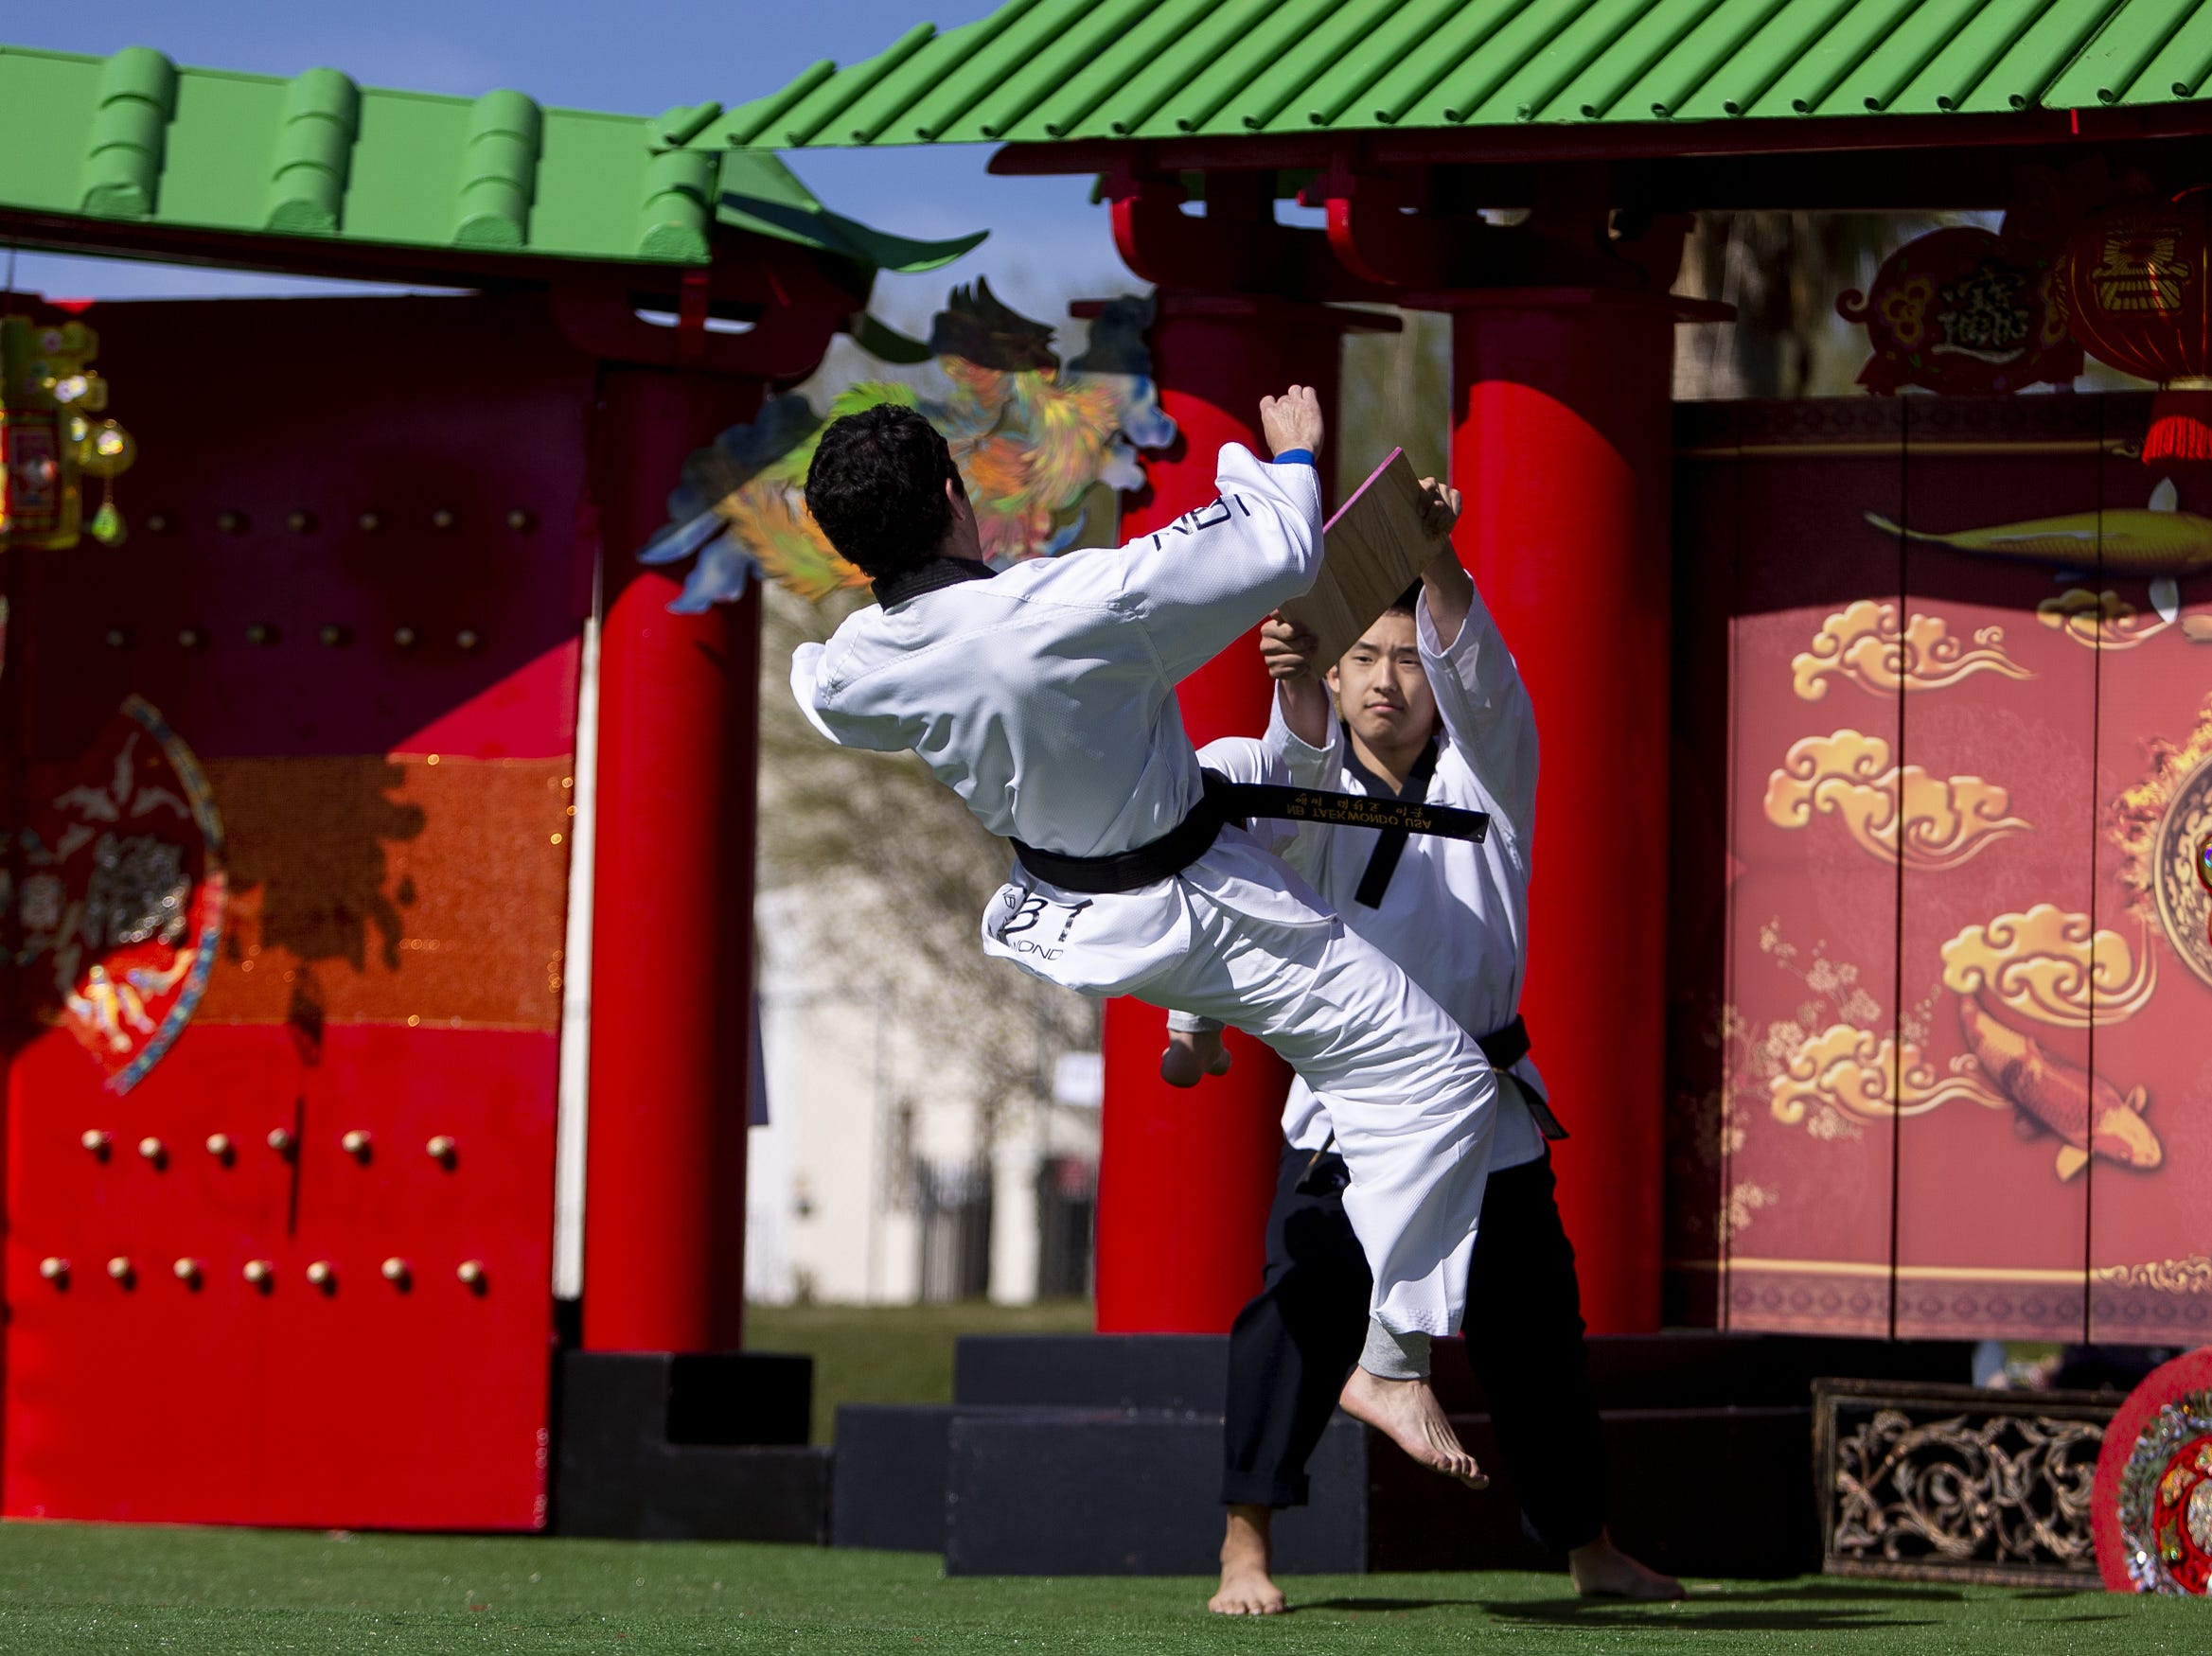 Elicio Peña, left, and Timothy Yi take part in the NB Taekwondo demo performance at the Chinese Week Culture and Cuisine Festival on Feb. 10, 2019, in Margaret T. Hance Park.